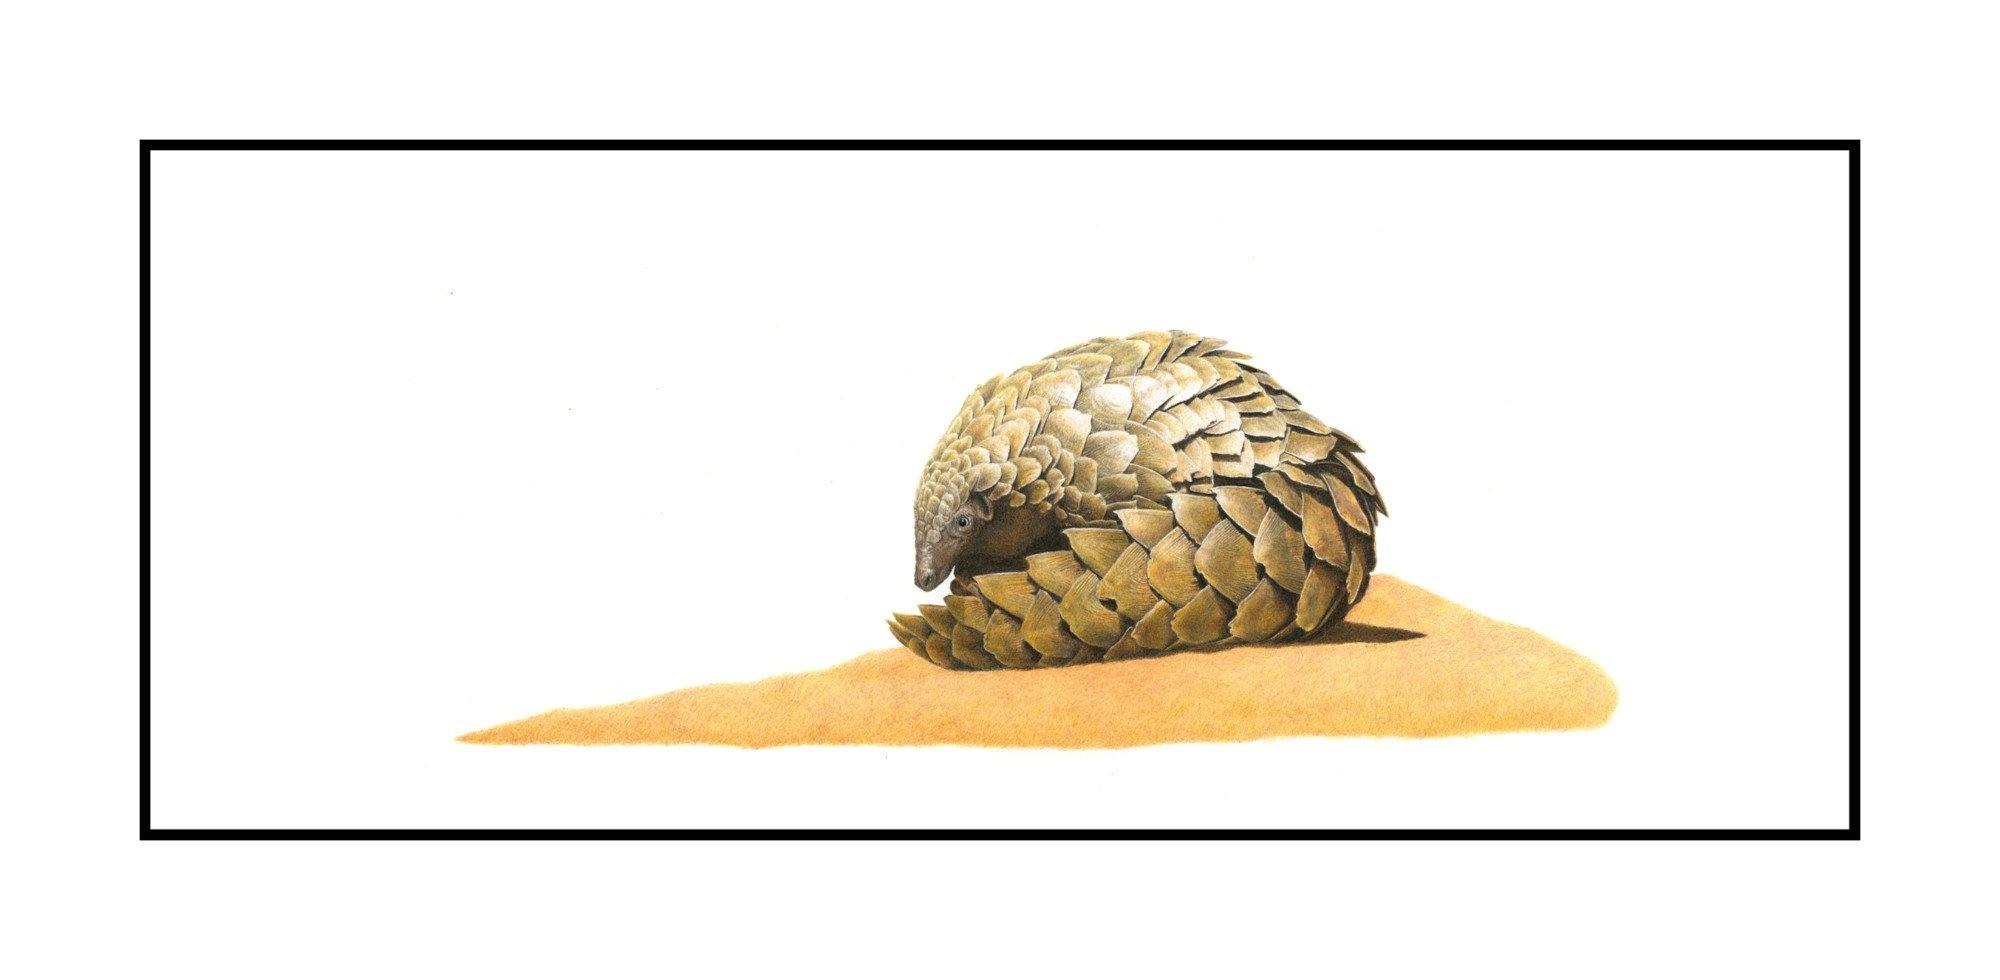 Pangolin 2 - The Original - Framed